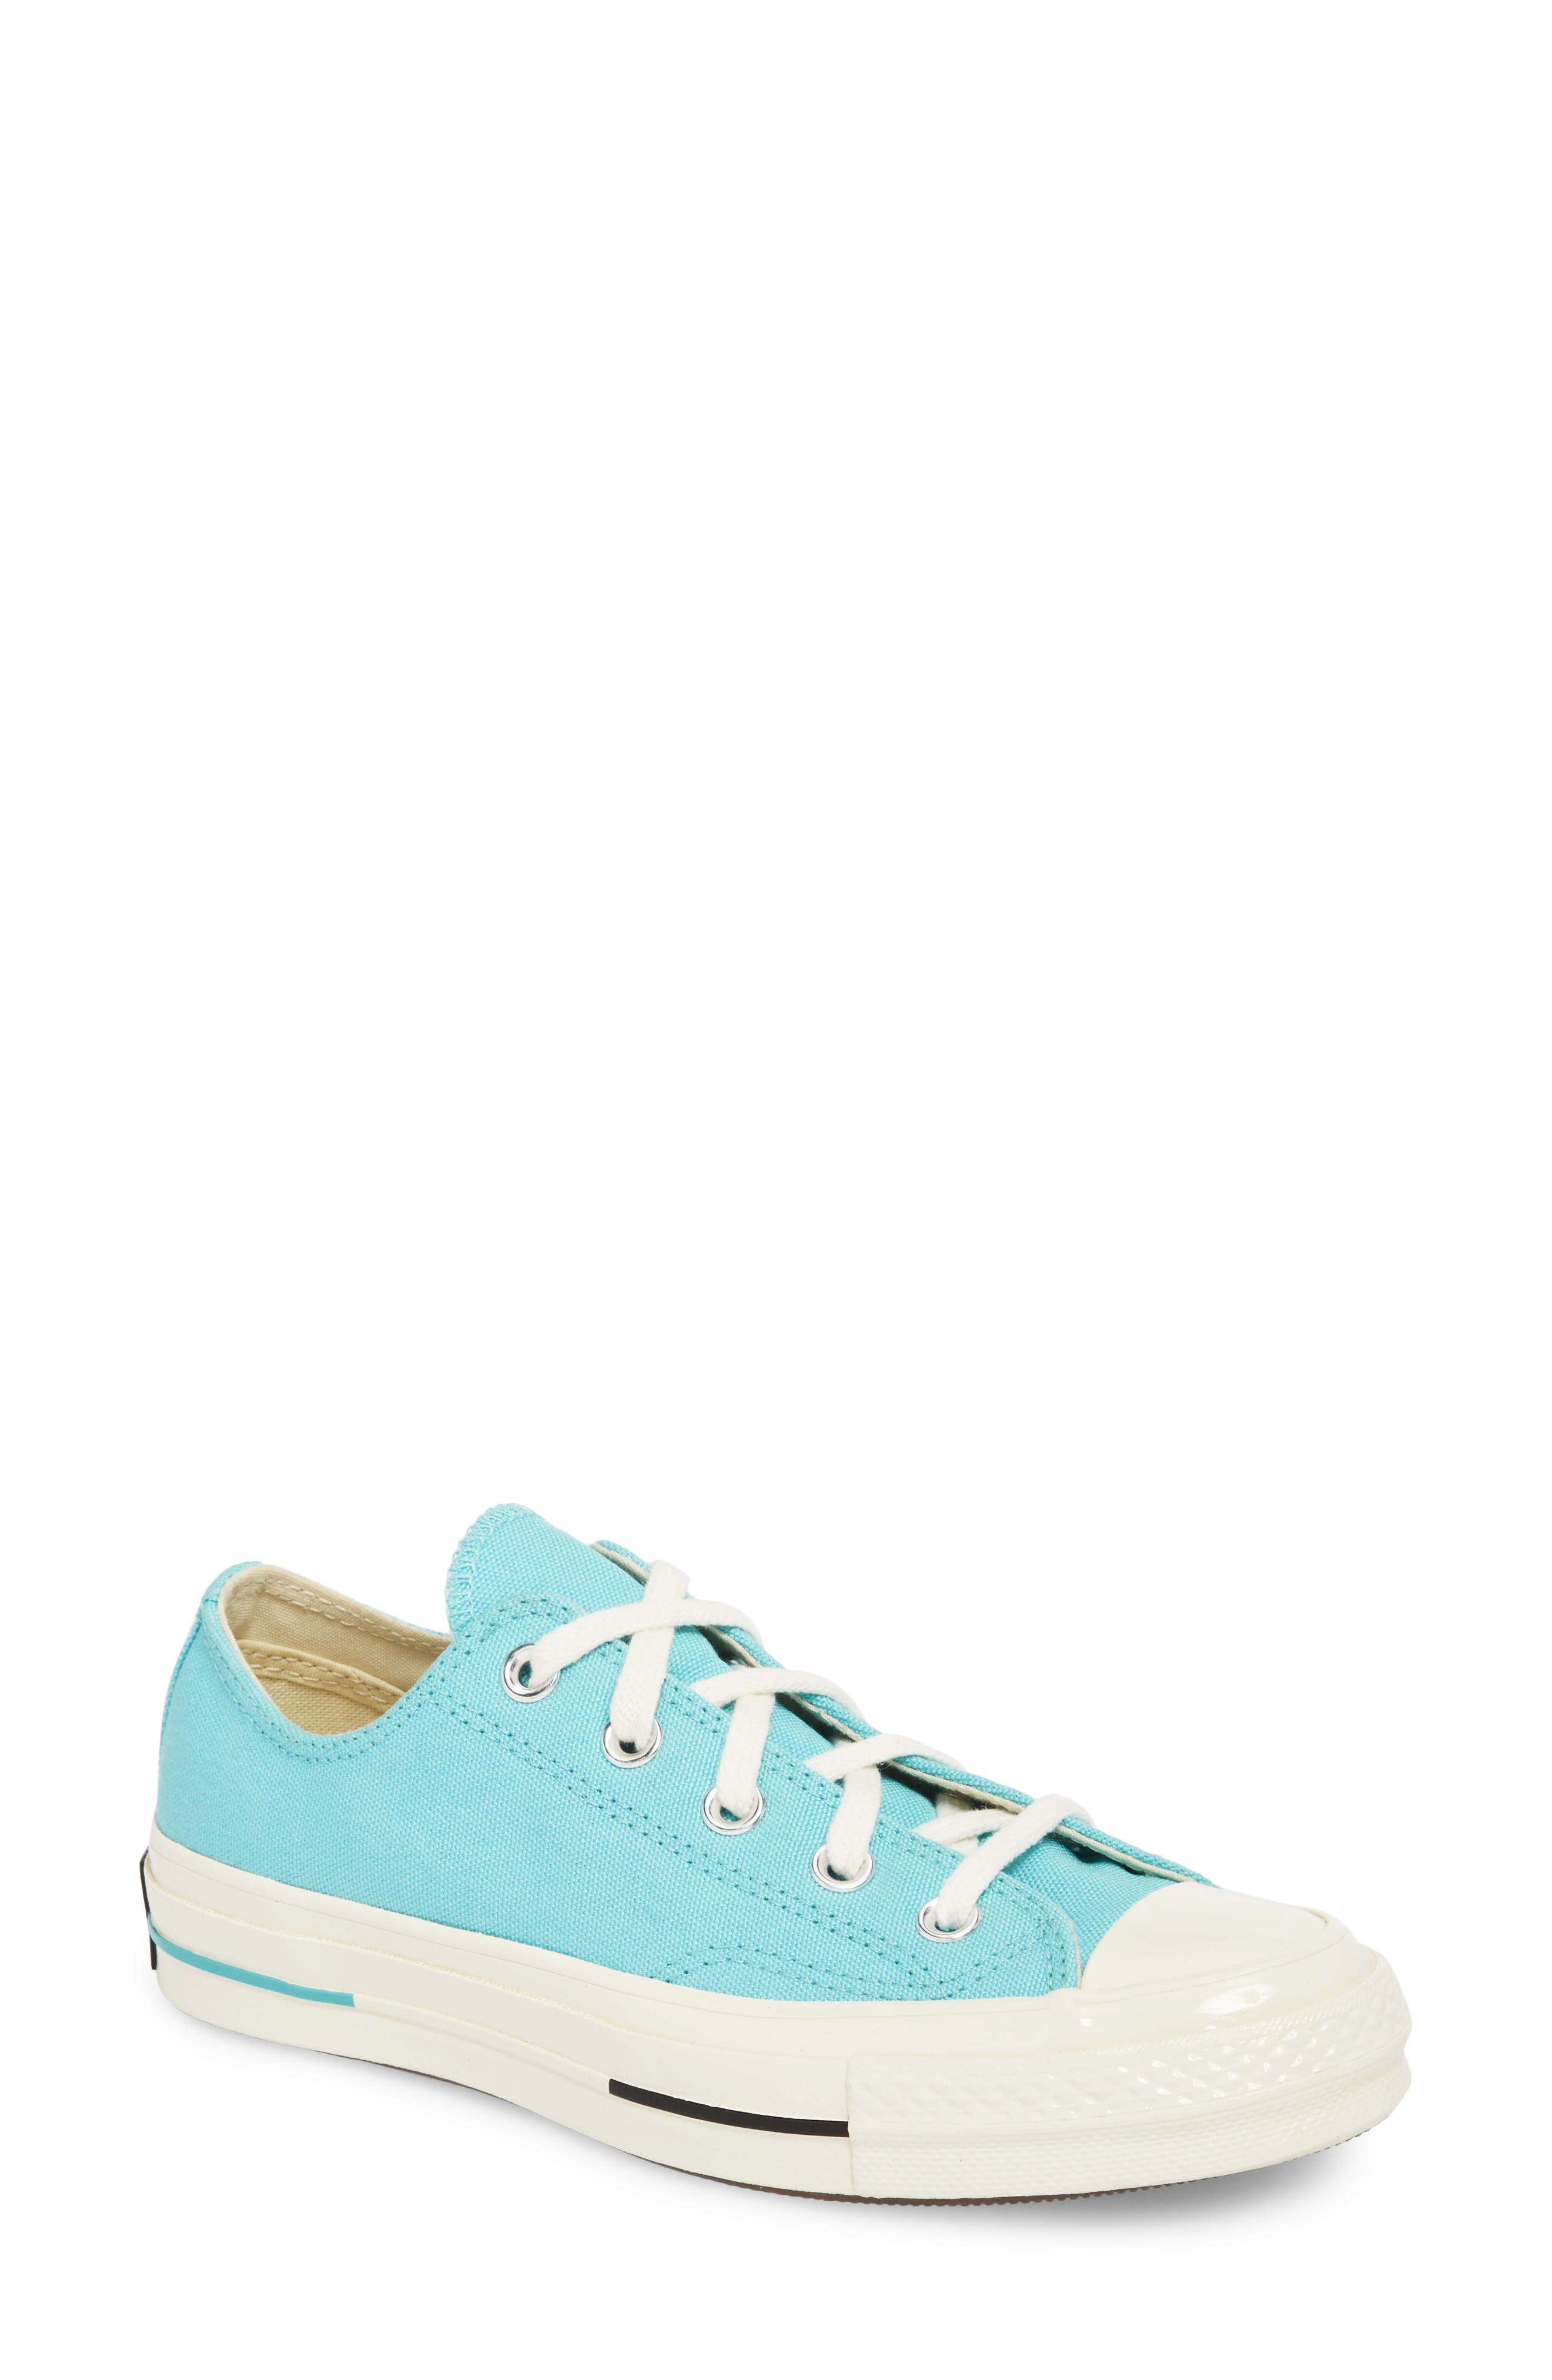 Chuck Taylor<sup>®</sup> All Star<sup>®</sup> '70s Brights Low Top Sneaker,                             Main thumbnail 1, color,                             440